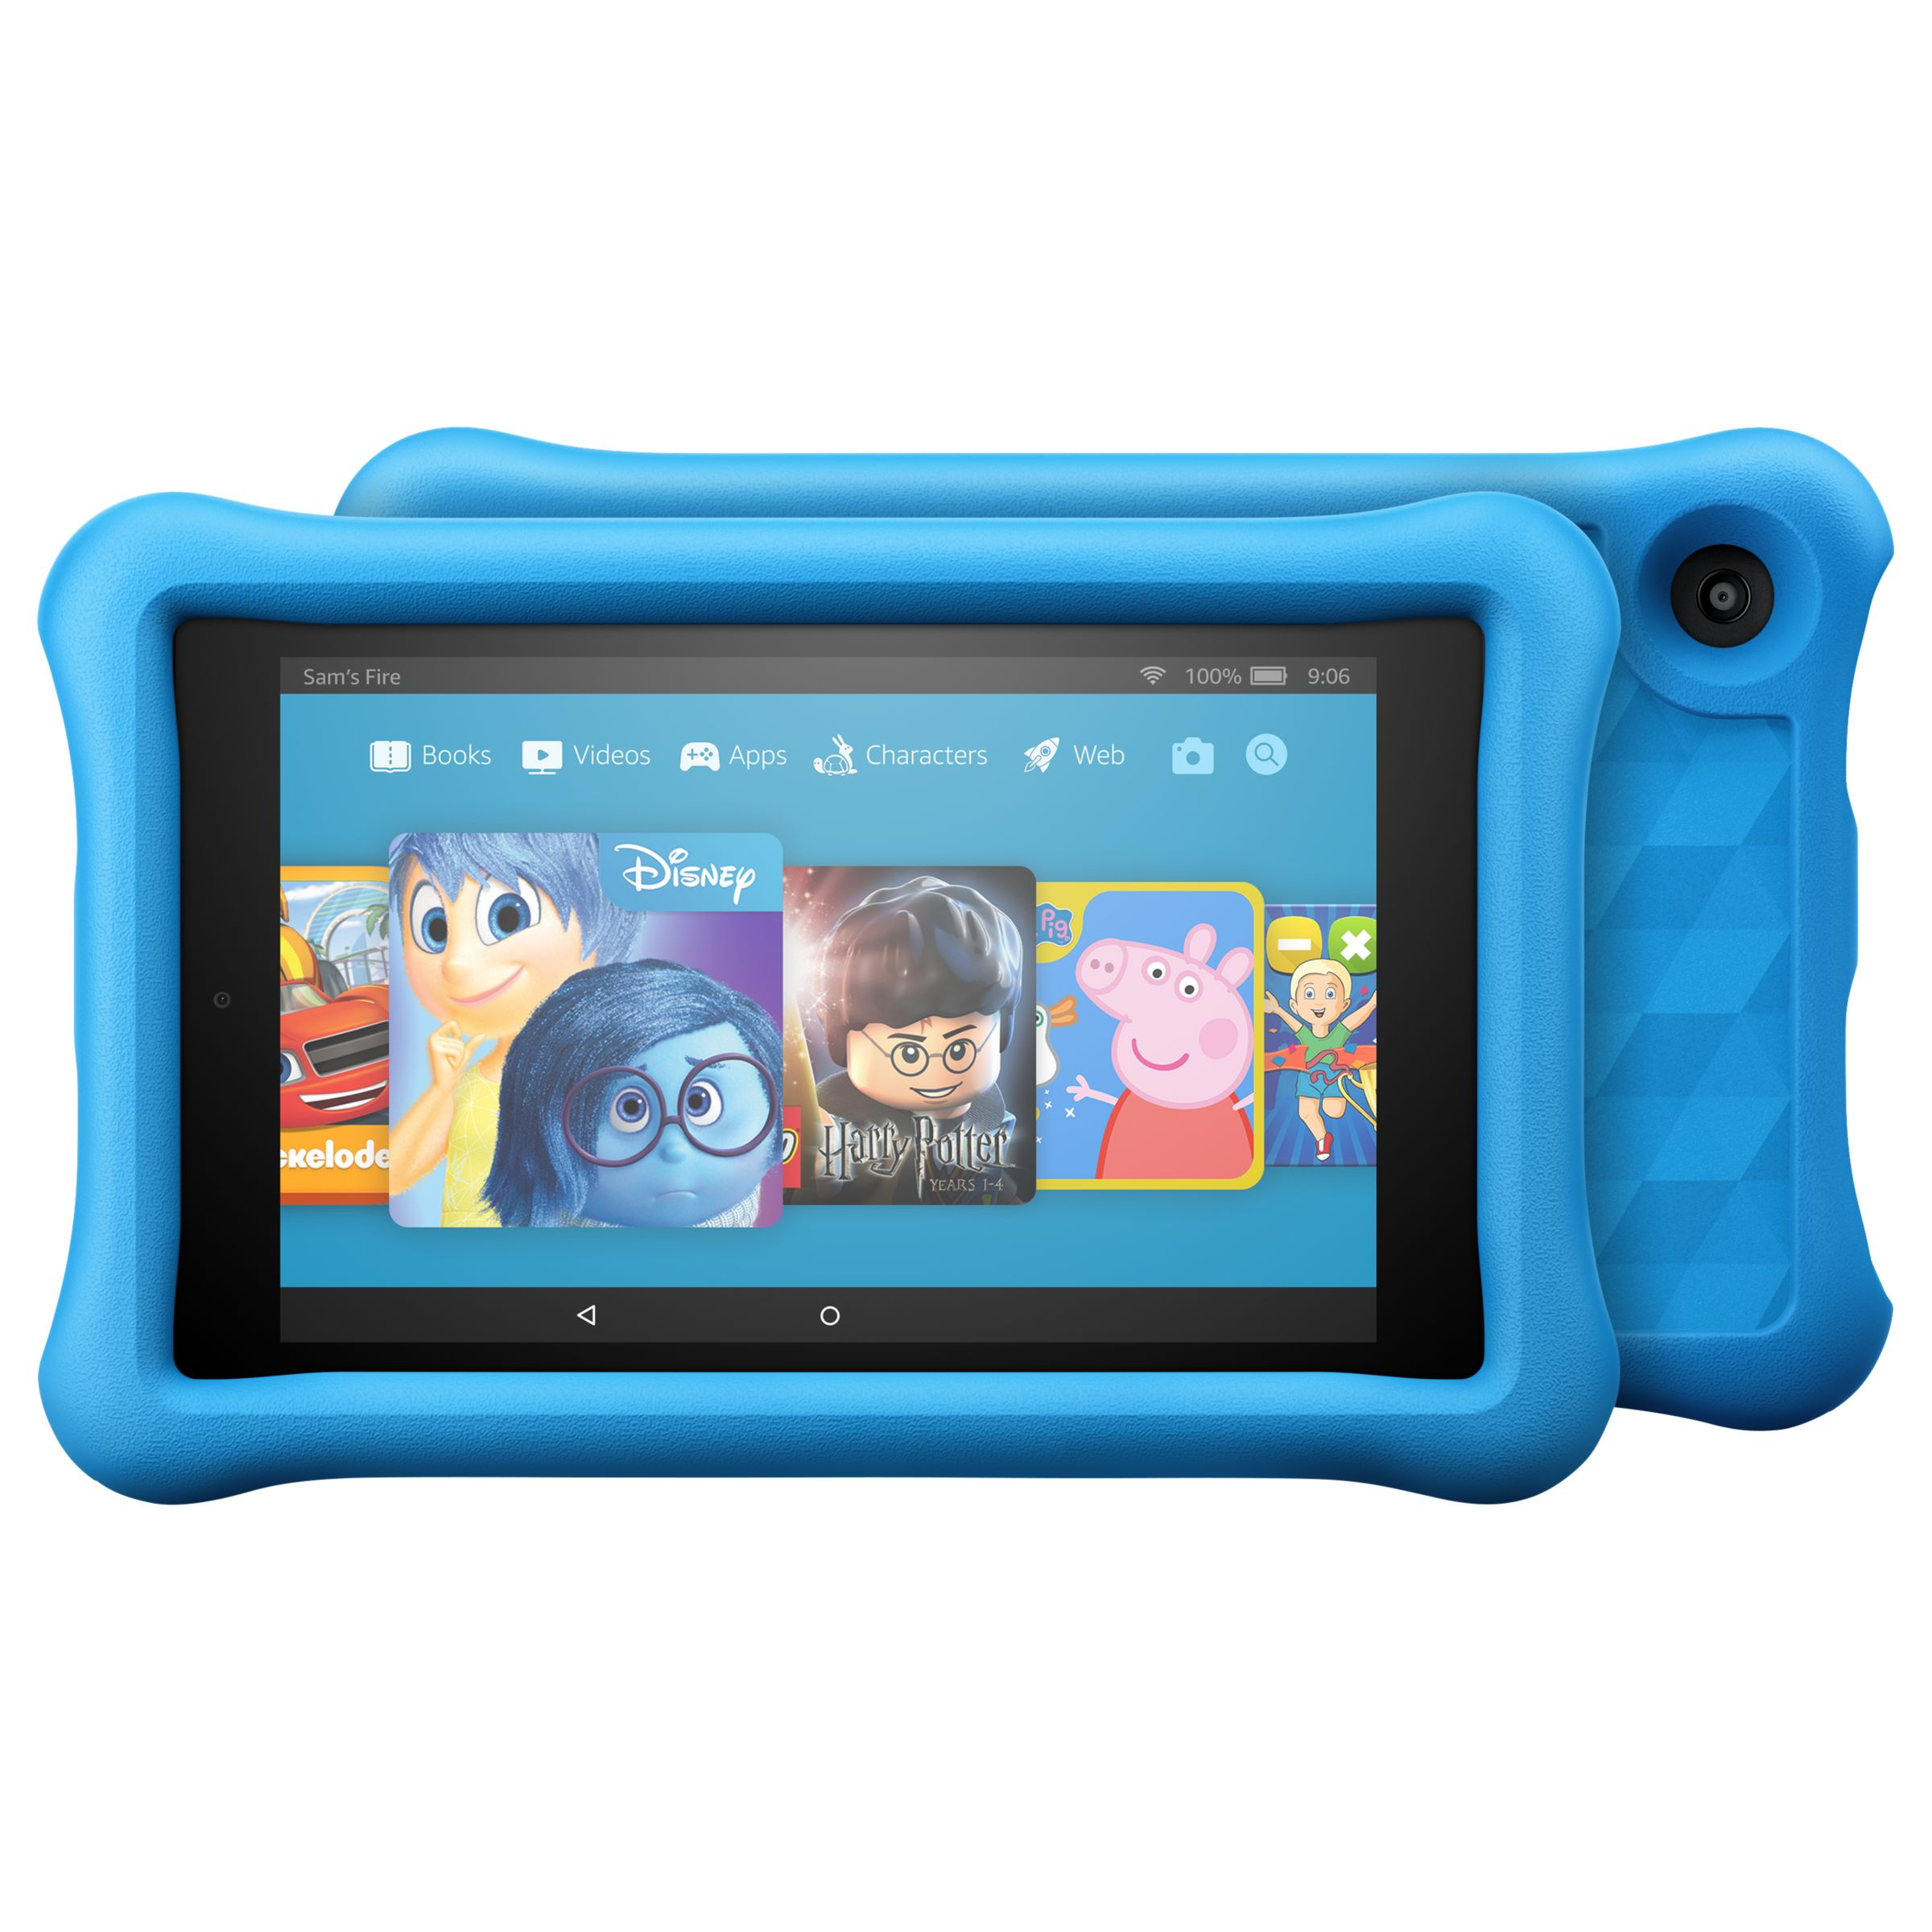 "Amazon Fire HD 8 Kids Edition Tablet with Kid-Proof Case, Quad-core, Fire OS, Wi-Fi, 32GB, 8"", Blue"